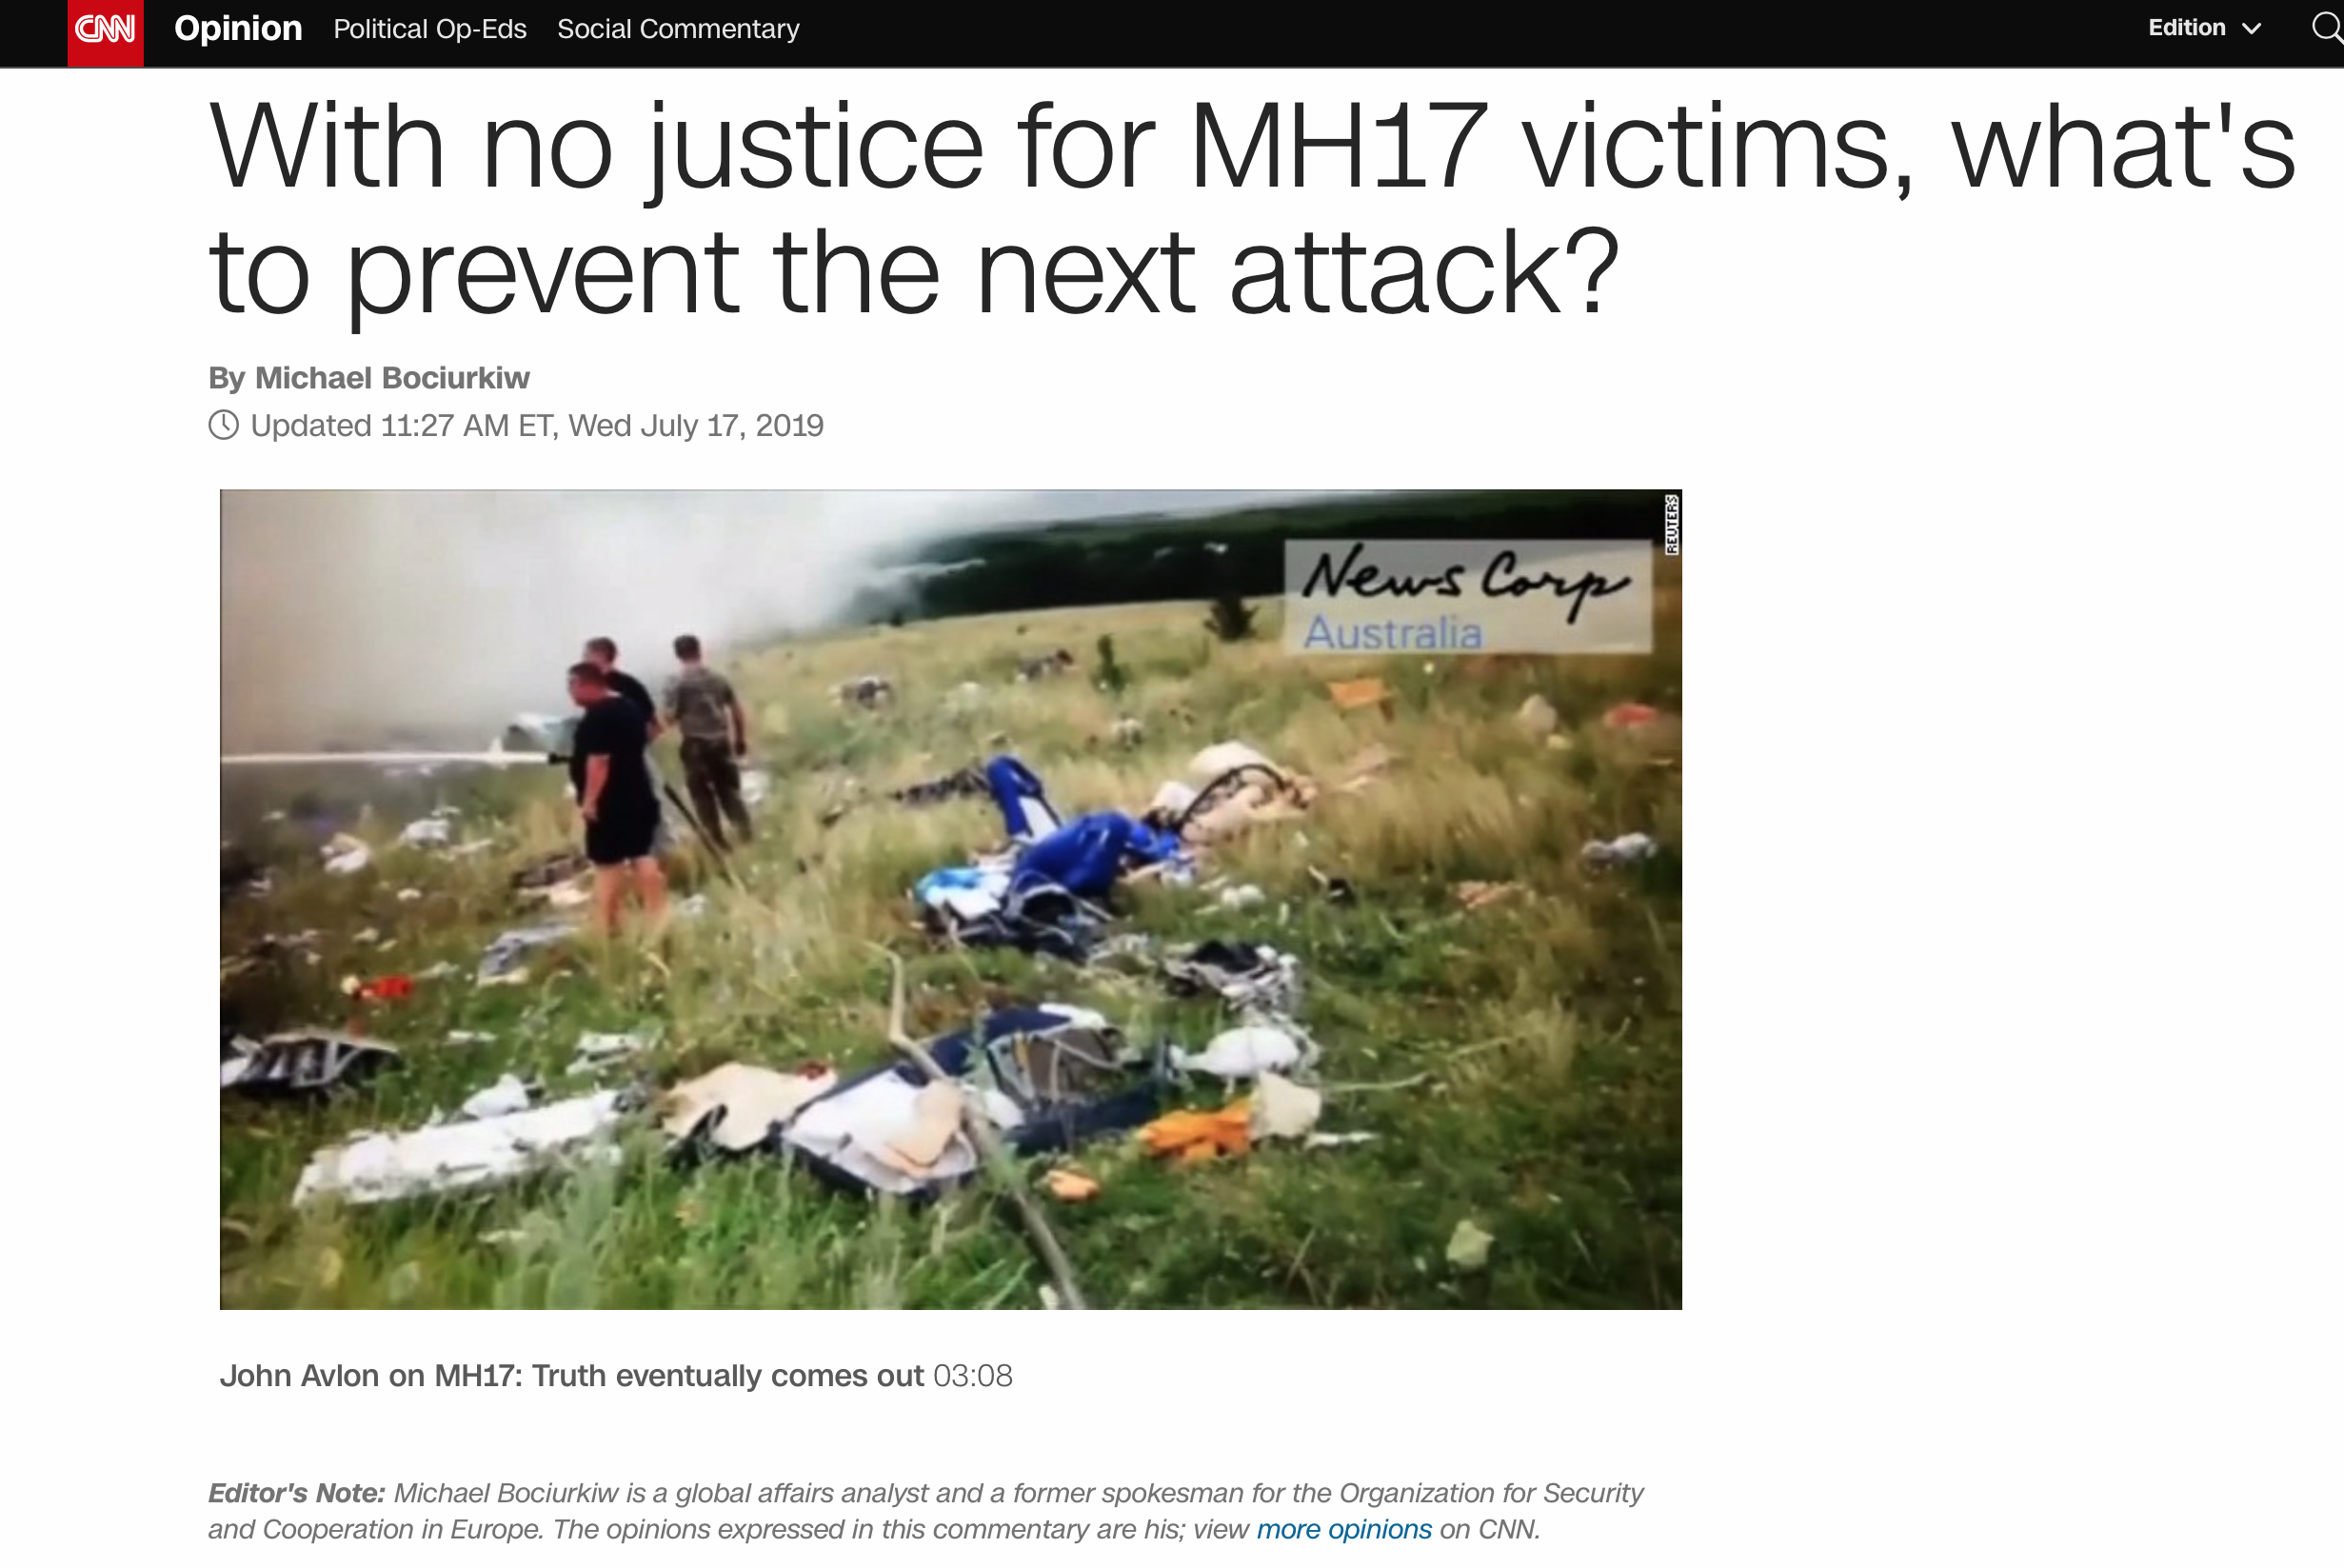 """CNN Opinion, July 17, 2019: """"Without the strong and unified backing of the international community, achieving justice for the victims of MH17 will be next to impossible. Russia will do everything it can to exploit any apparent disunity. If the thugs who brought down MH17 are allowed to do so with impunity, what is to prevent other terrorists."""" To read, click   here"""